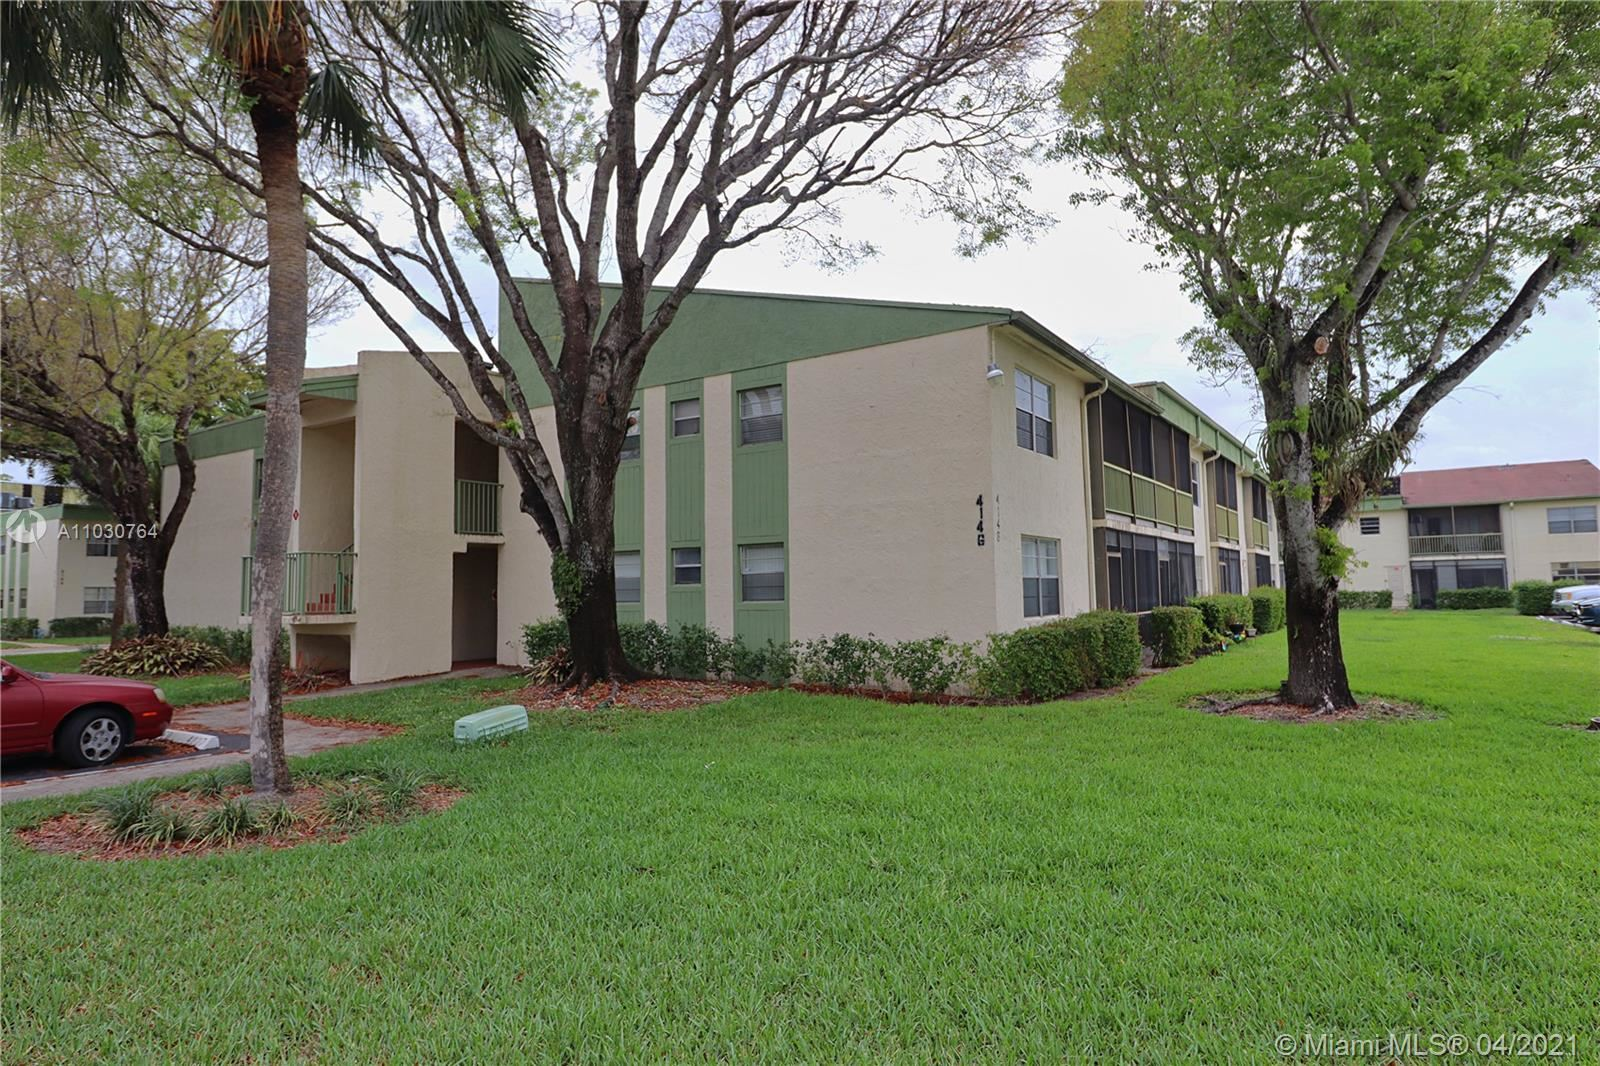 4146 NW 90th Ave #204, Coral Springs, FL 33065 - #: A11030764